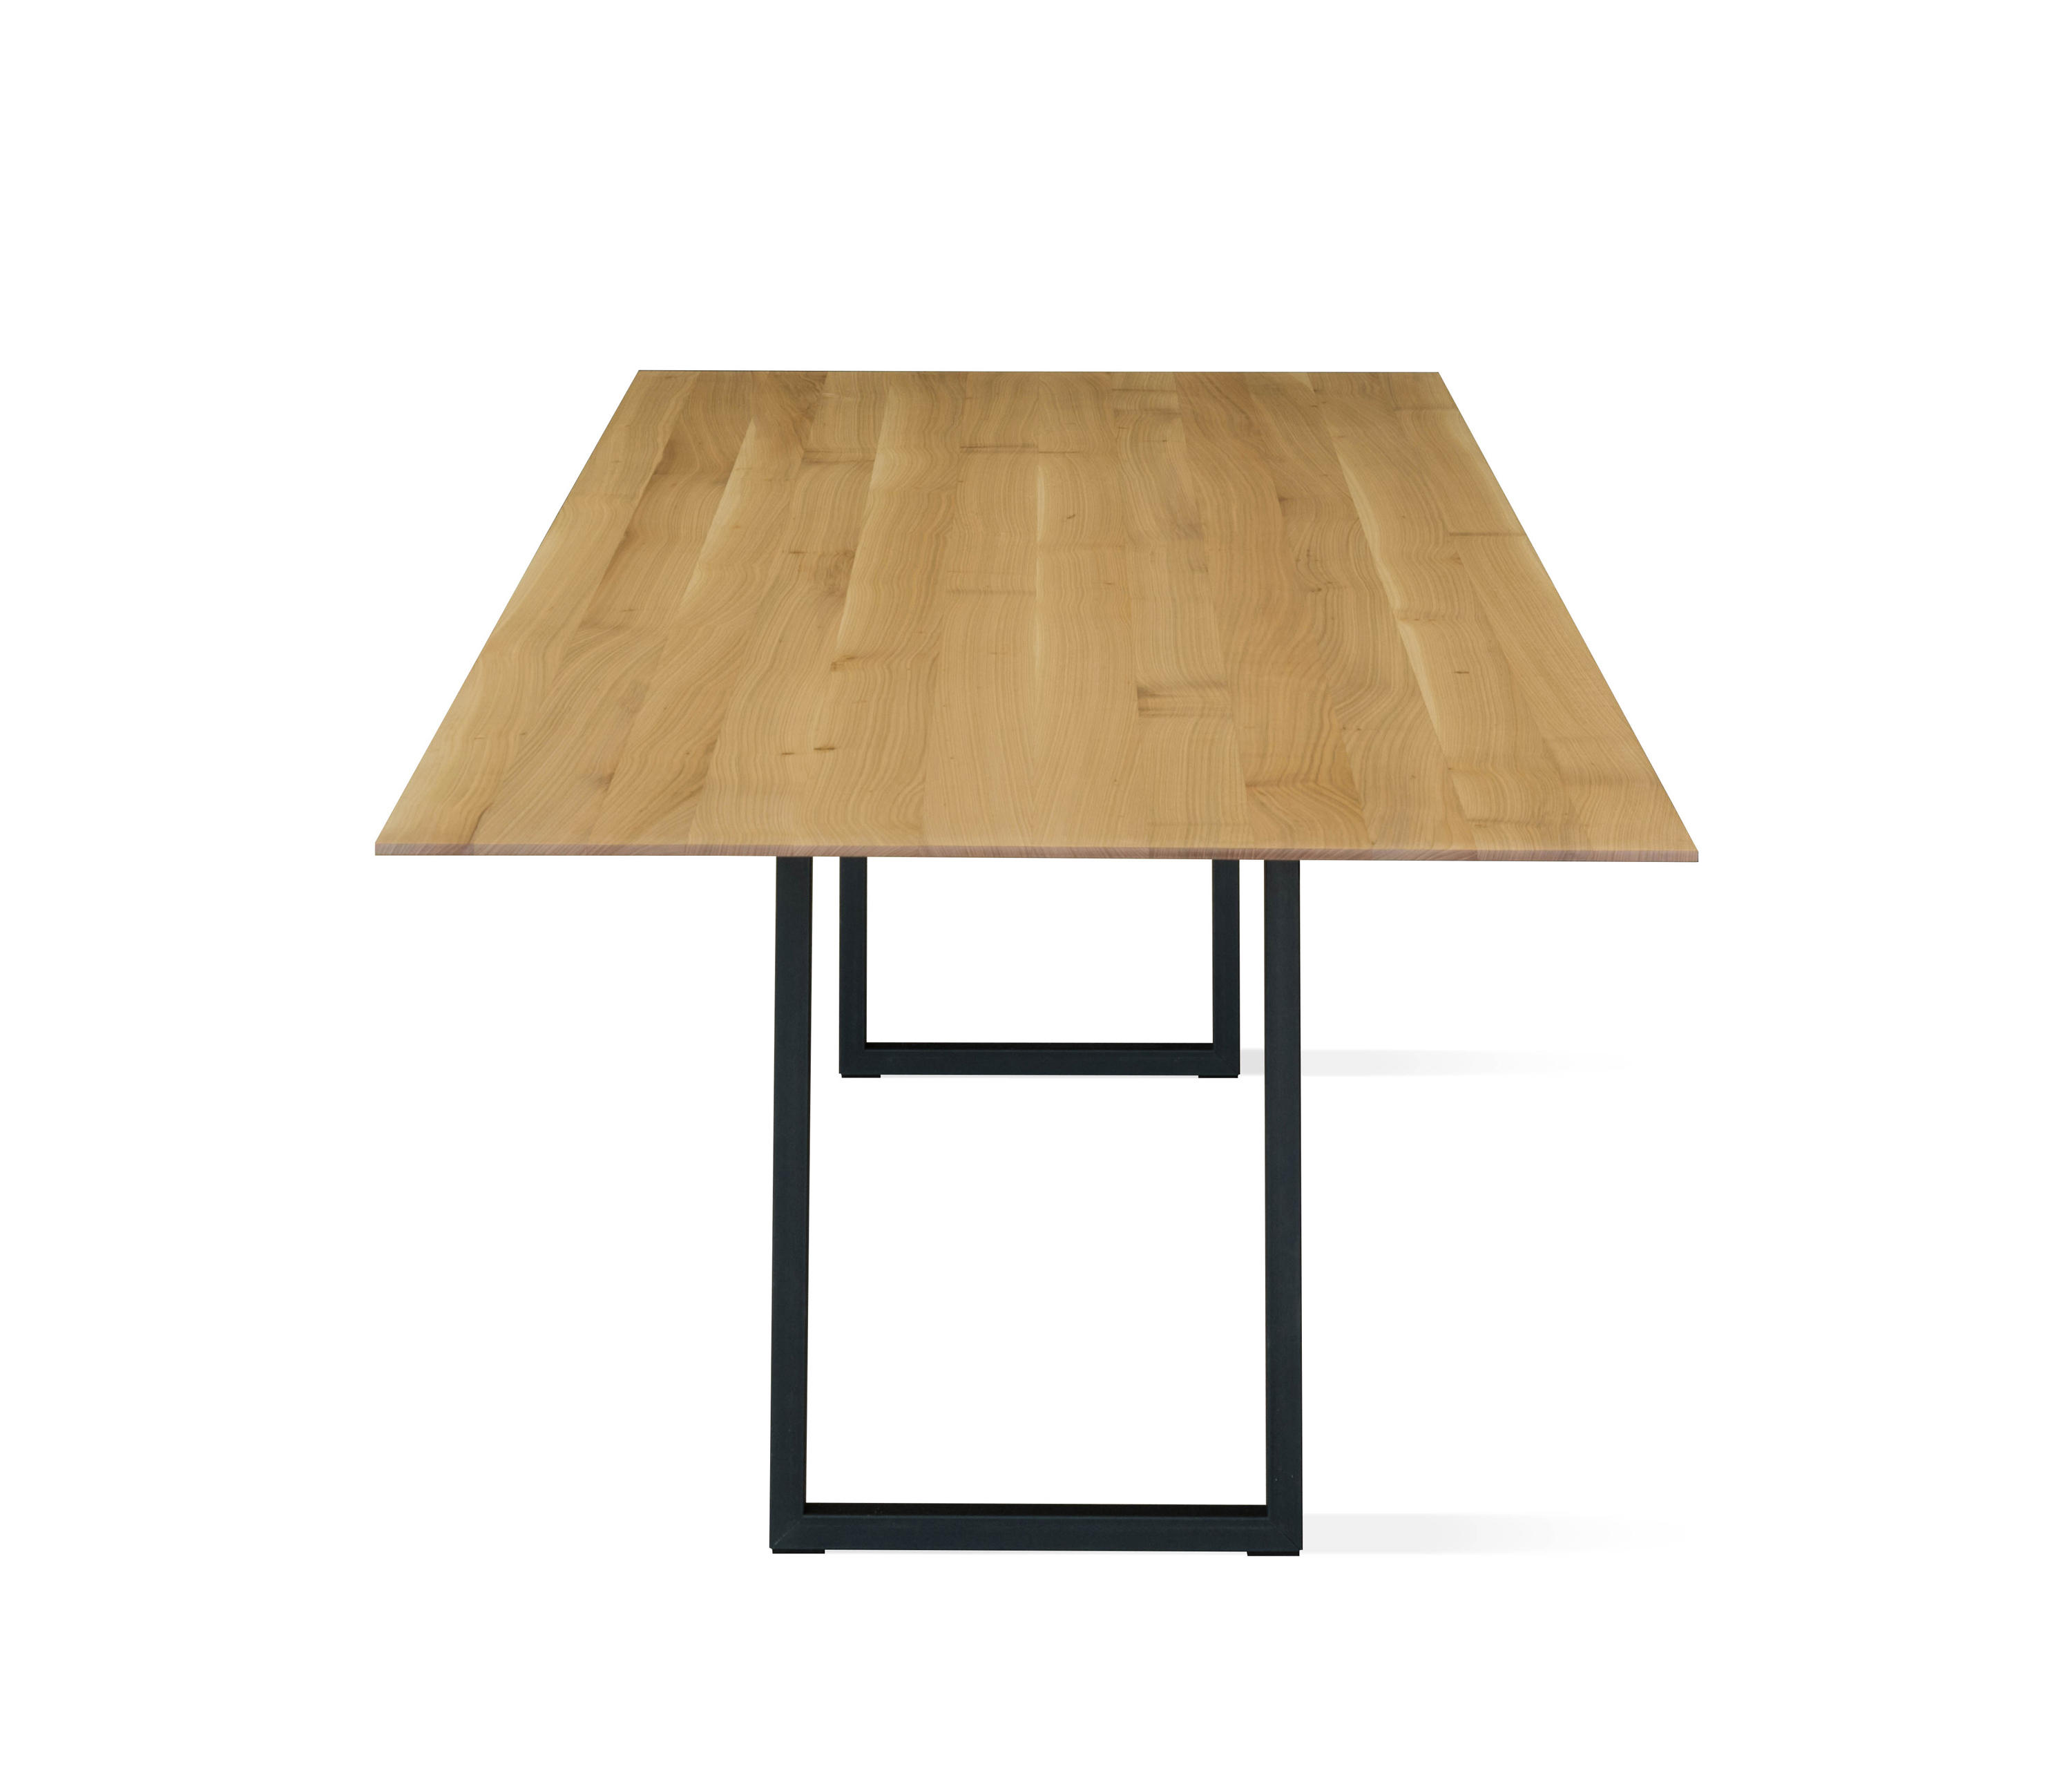 IGN. FRAME. - Dining tables from Ign. Design.   Architonic